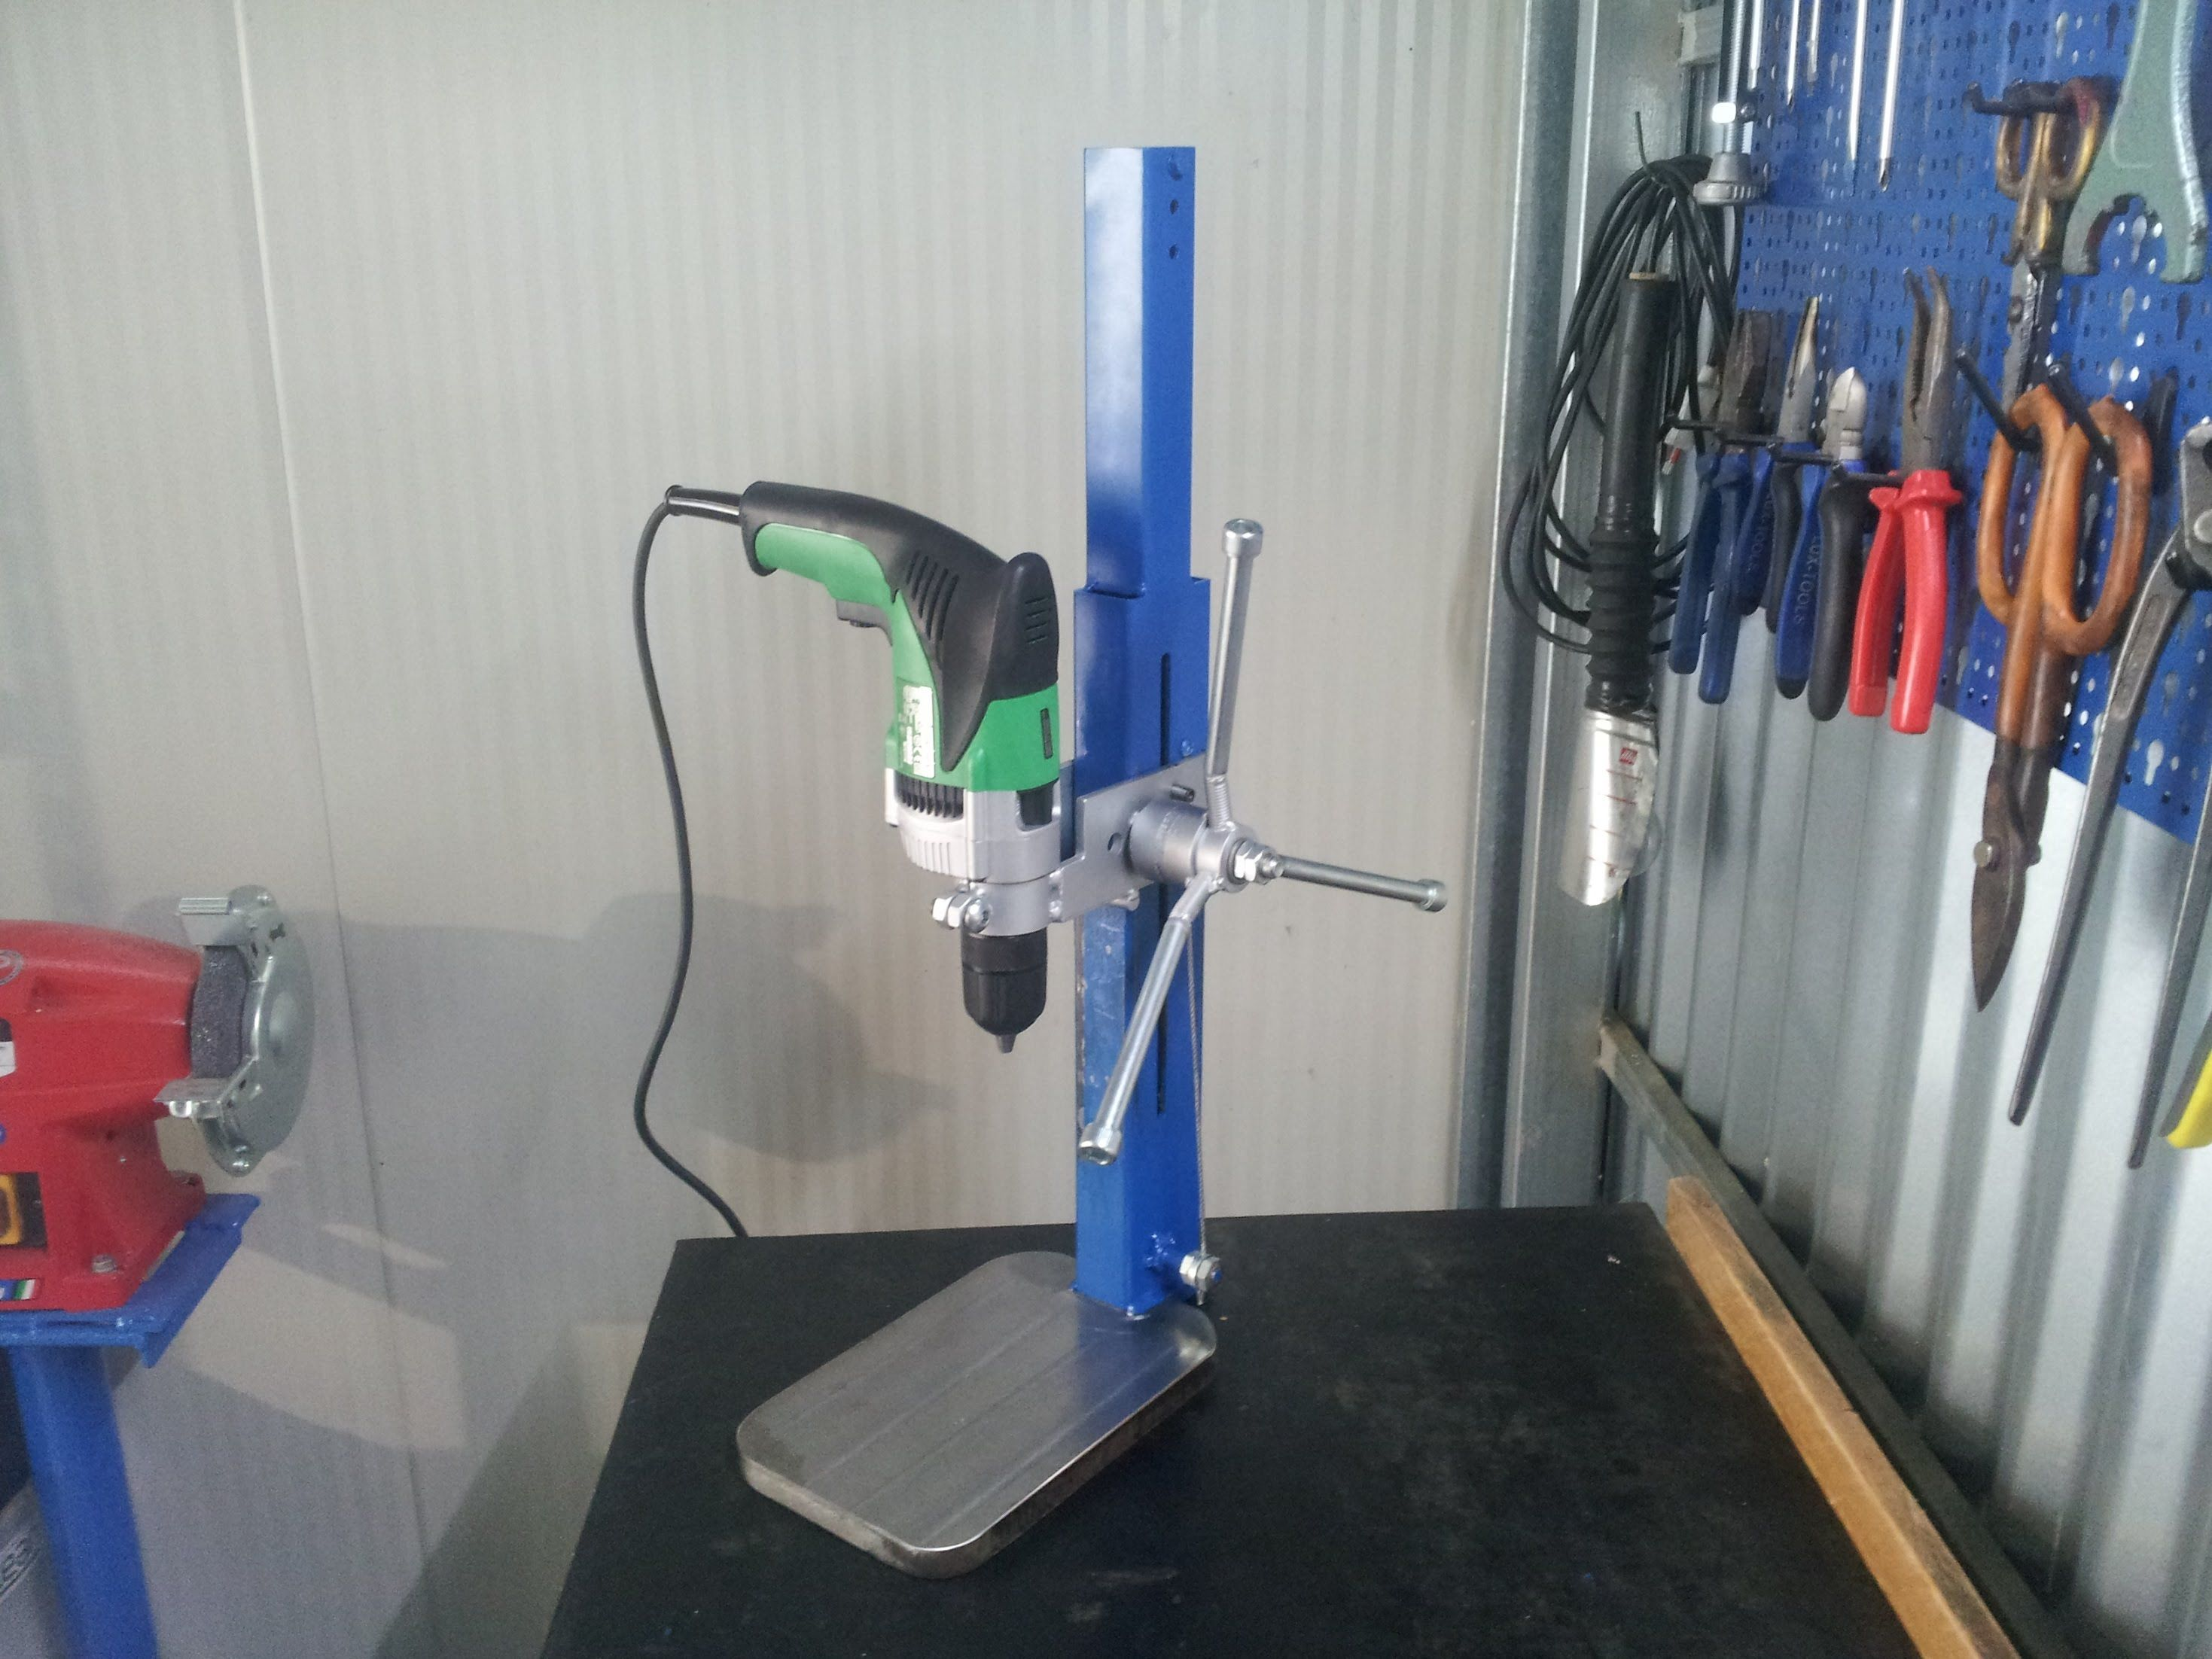 Trapano A Colonna Fai Da Te Homemade Drill Press Scule